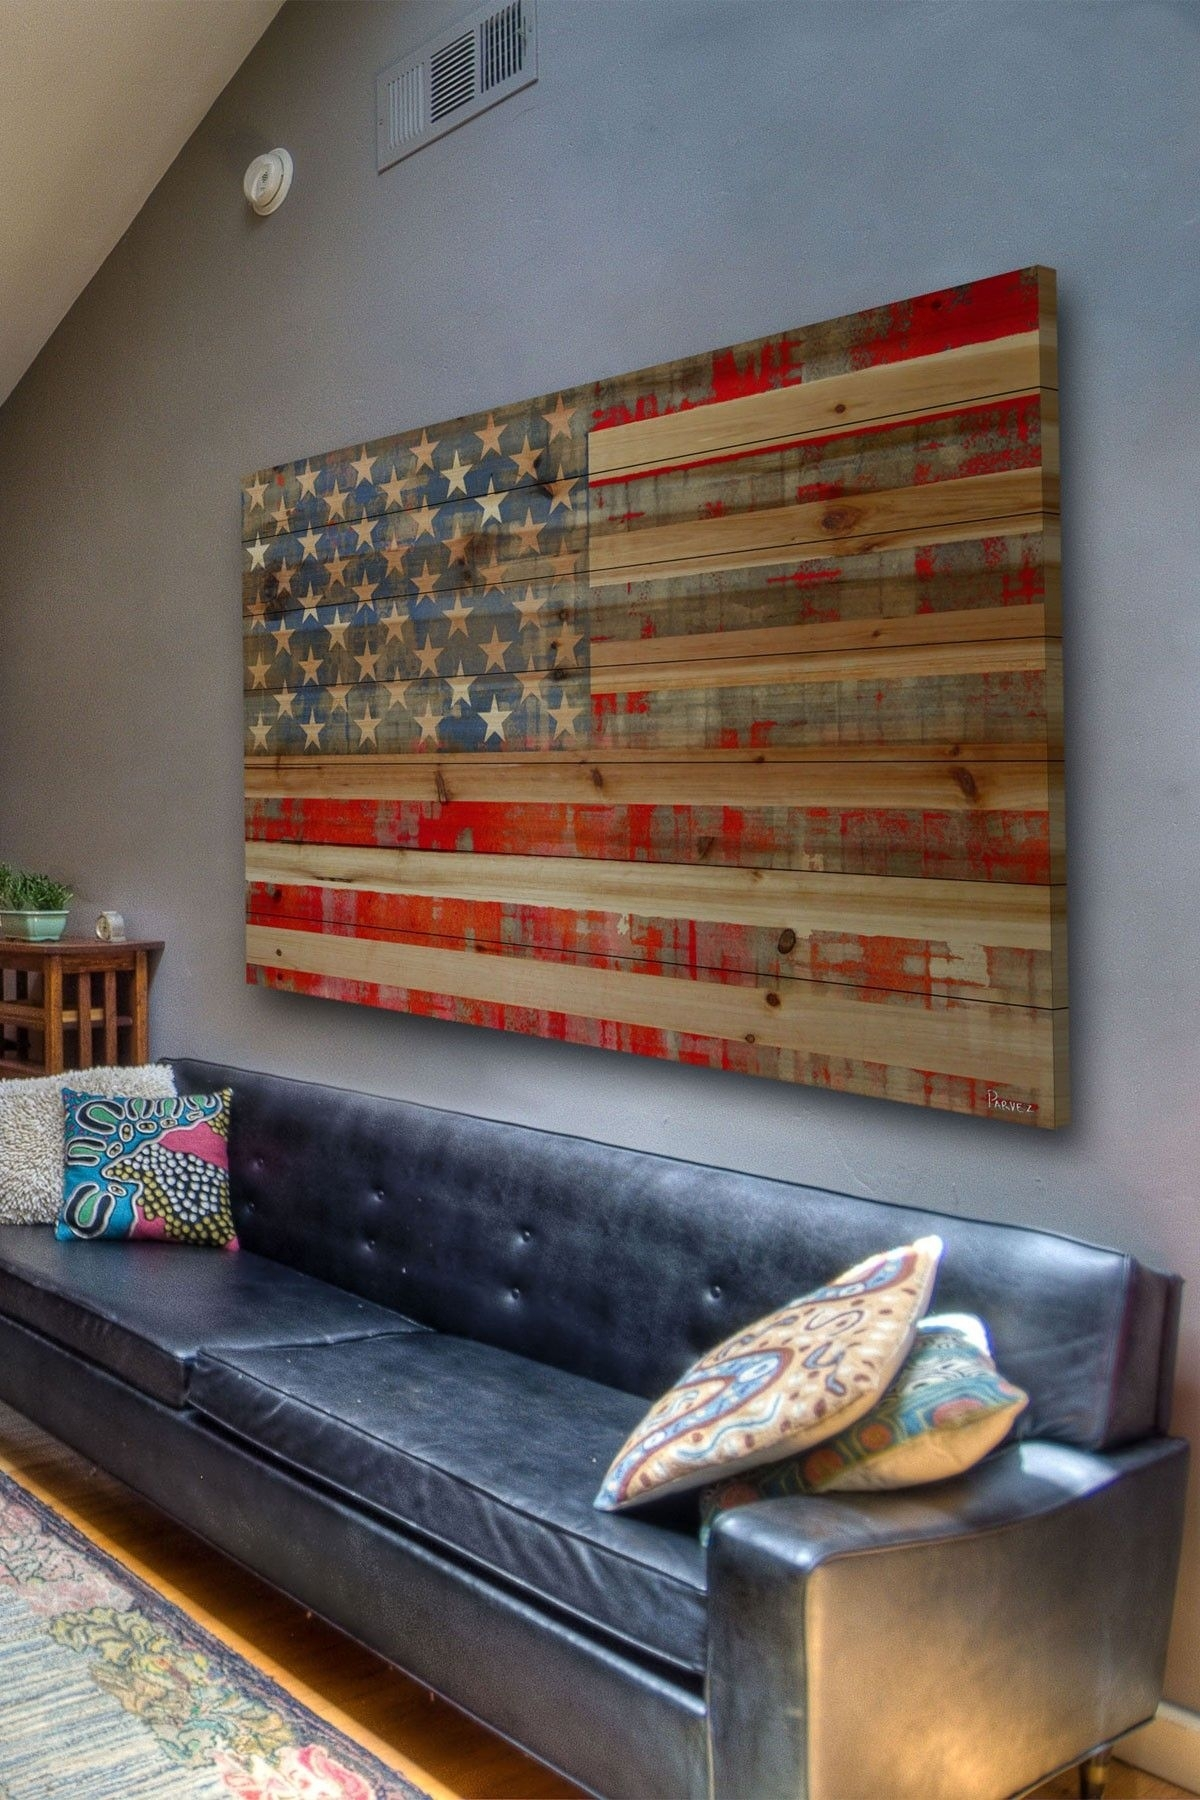 Rustic American Flag Decor Maybe For A Basement Or Lake House Regarding Latest American Flag Wall Art (View 5 of 15)